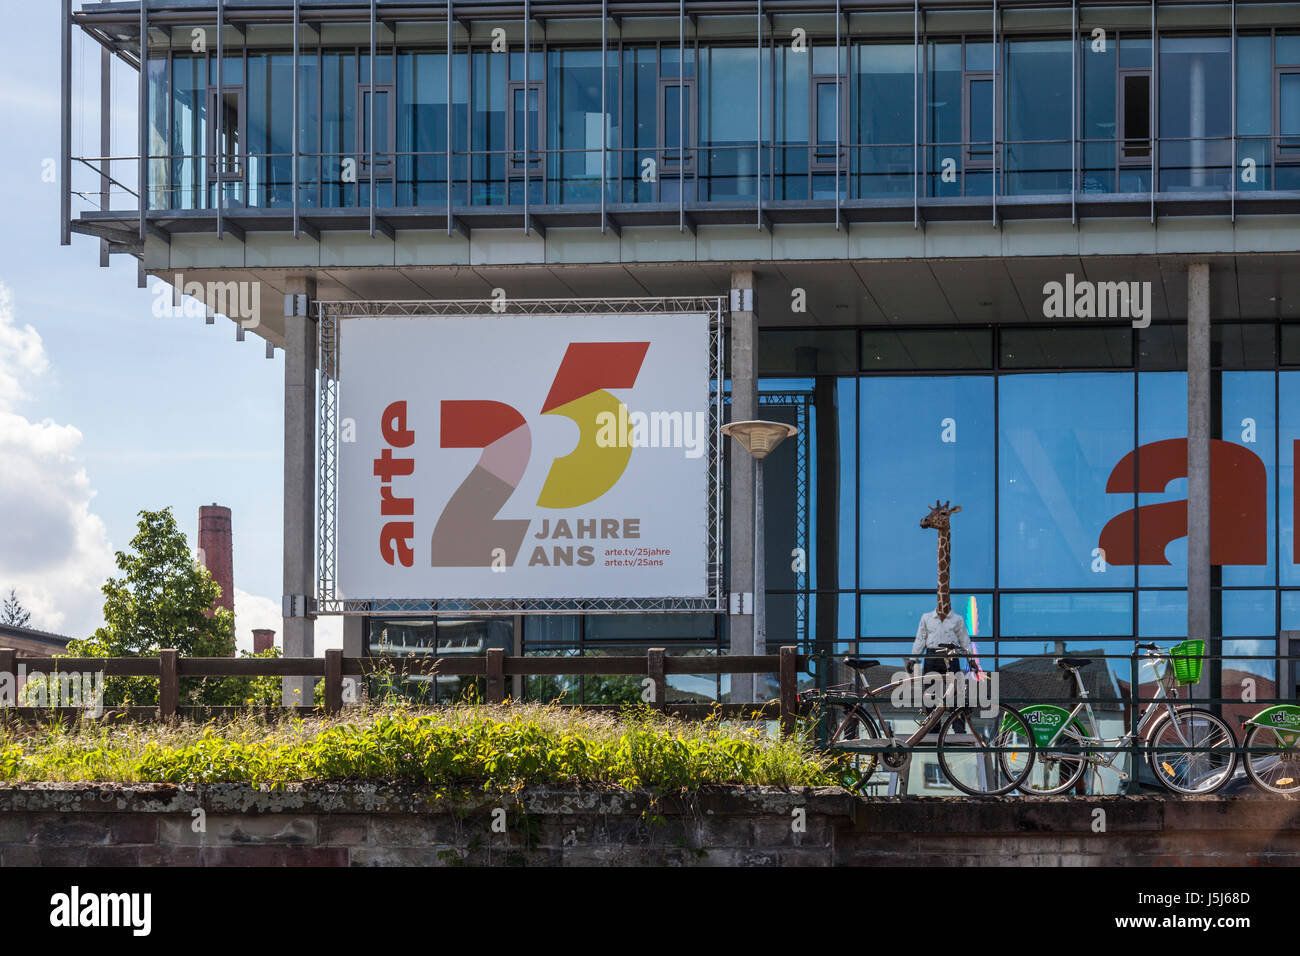 Headquarters of ARTE (Association relative à la télévision européenne), a dual language public - Stock Image